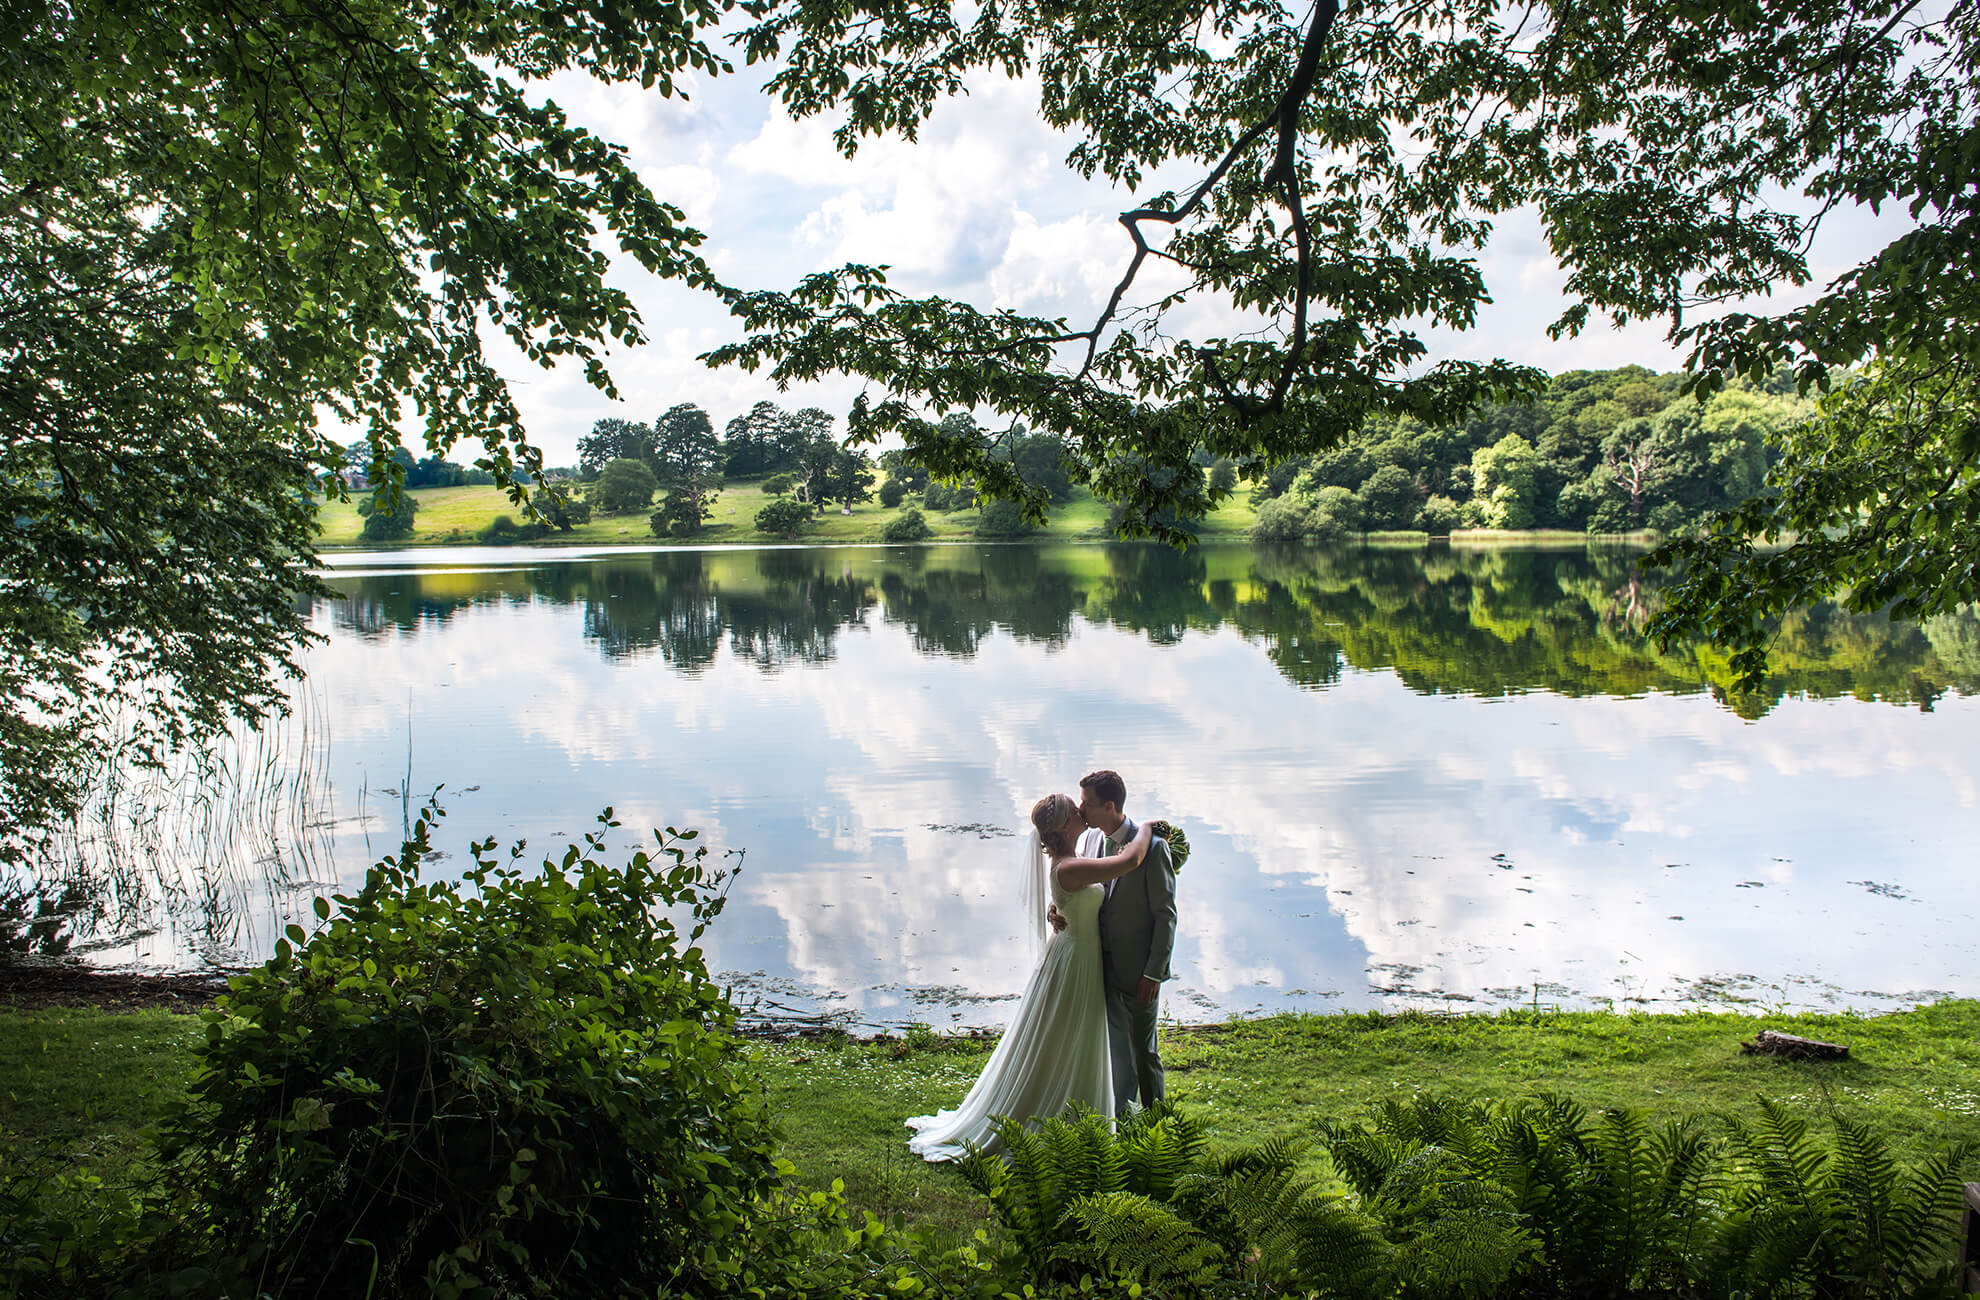 A bride and groom have a moment next to the private mere on their wedding day at Combermere Abbey in Cheshire